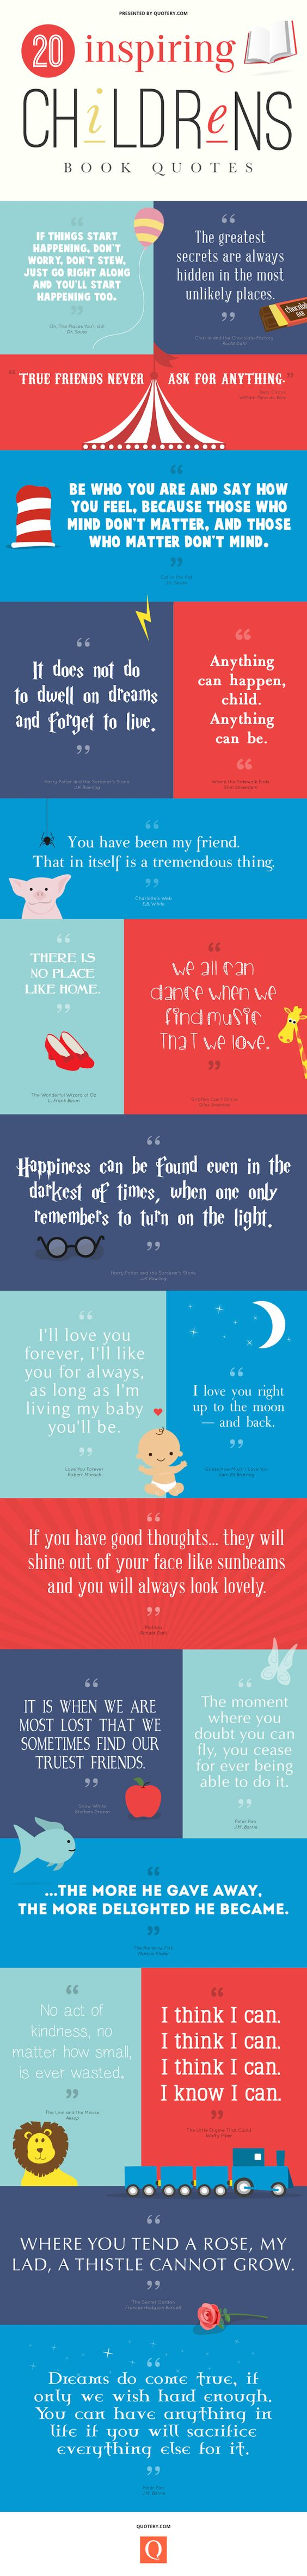 infograpic of quotes from children's books